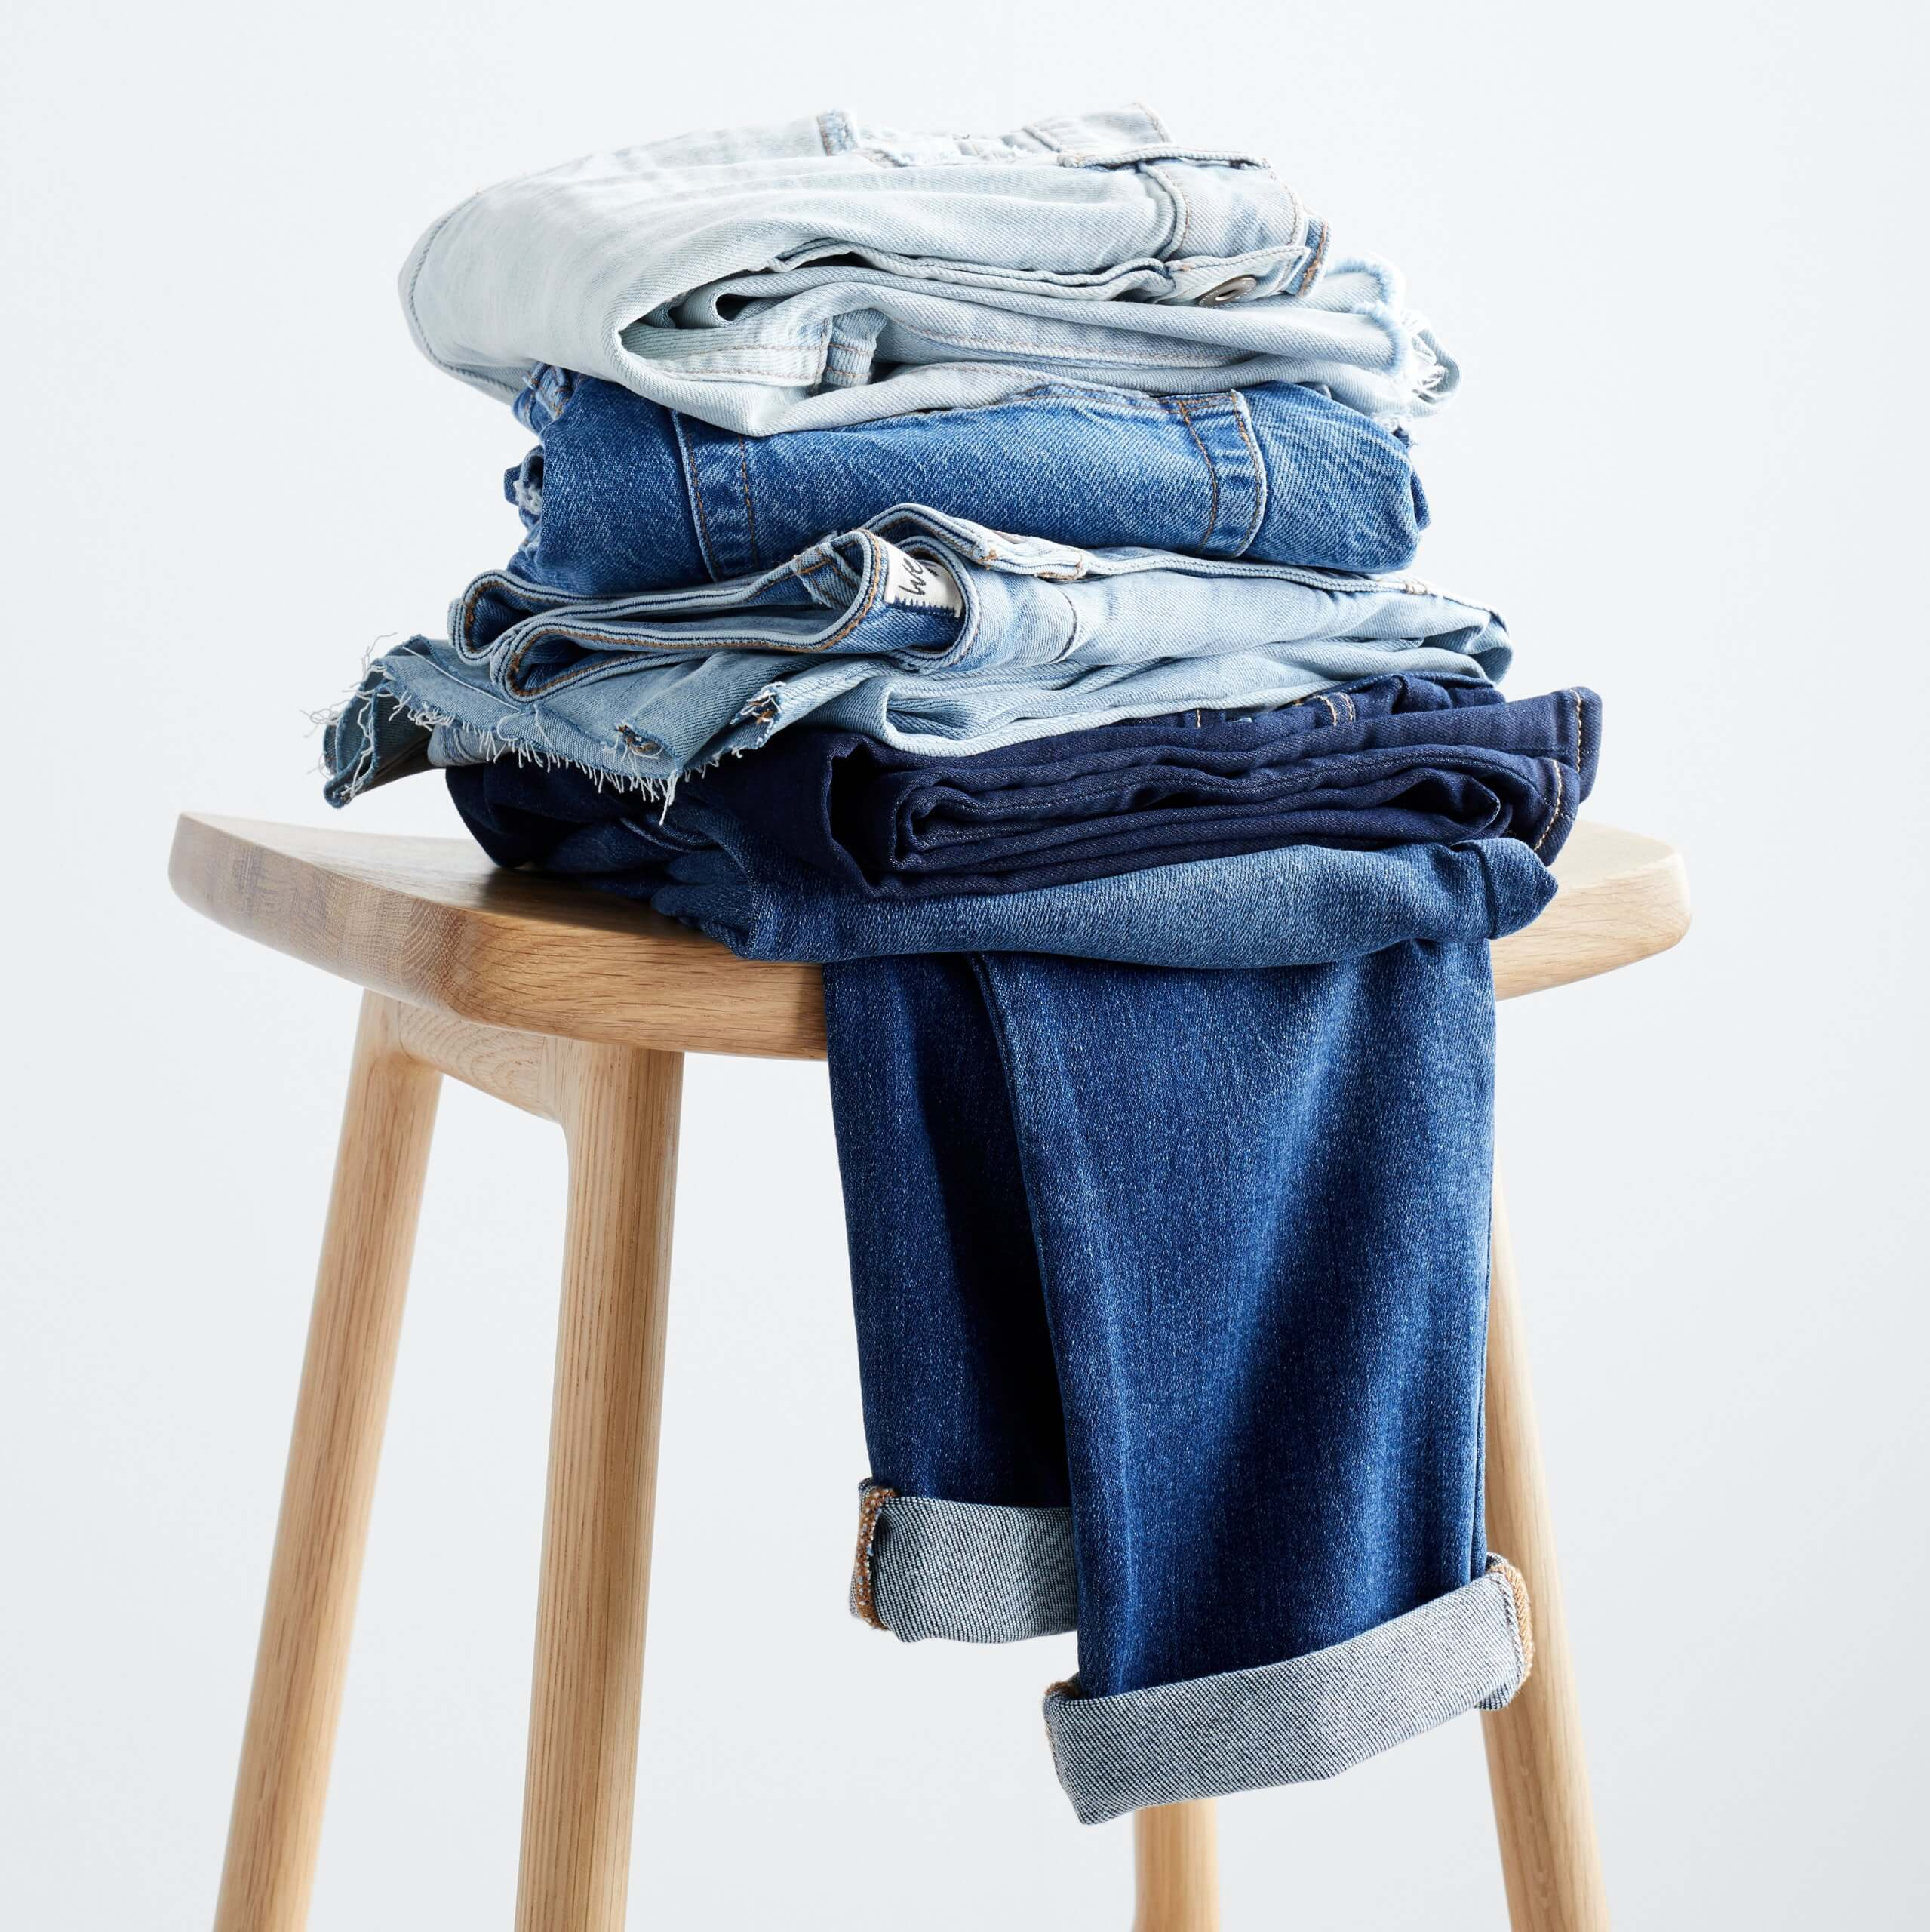 Stitch Fix women's folded jeans in different washes on wooden stool.